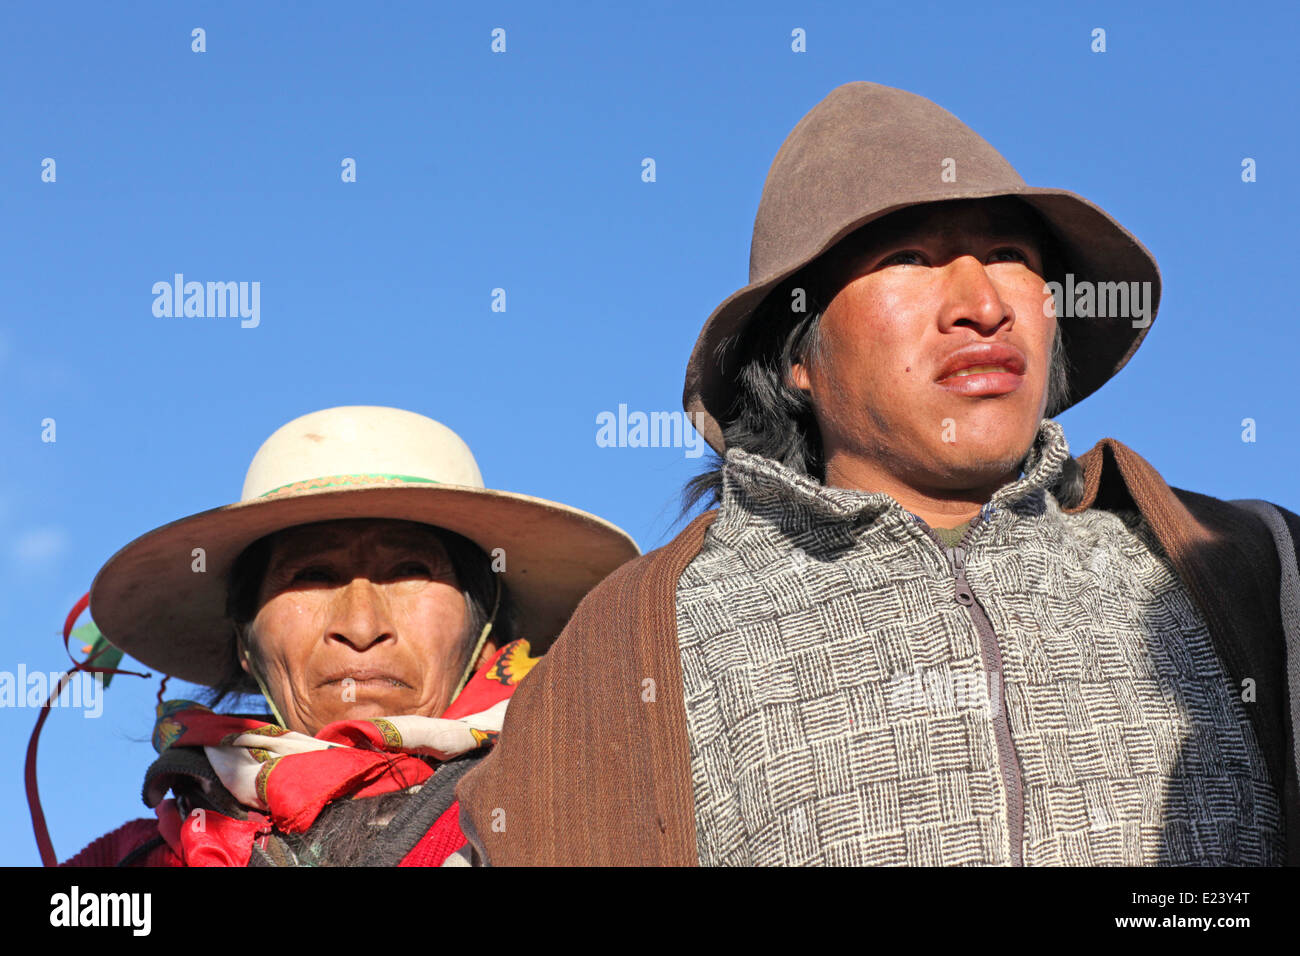 native american woman and her son, in the Andes mountains - Stock Image